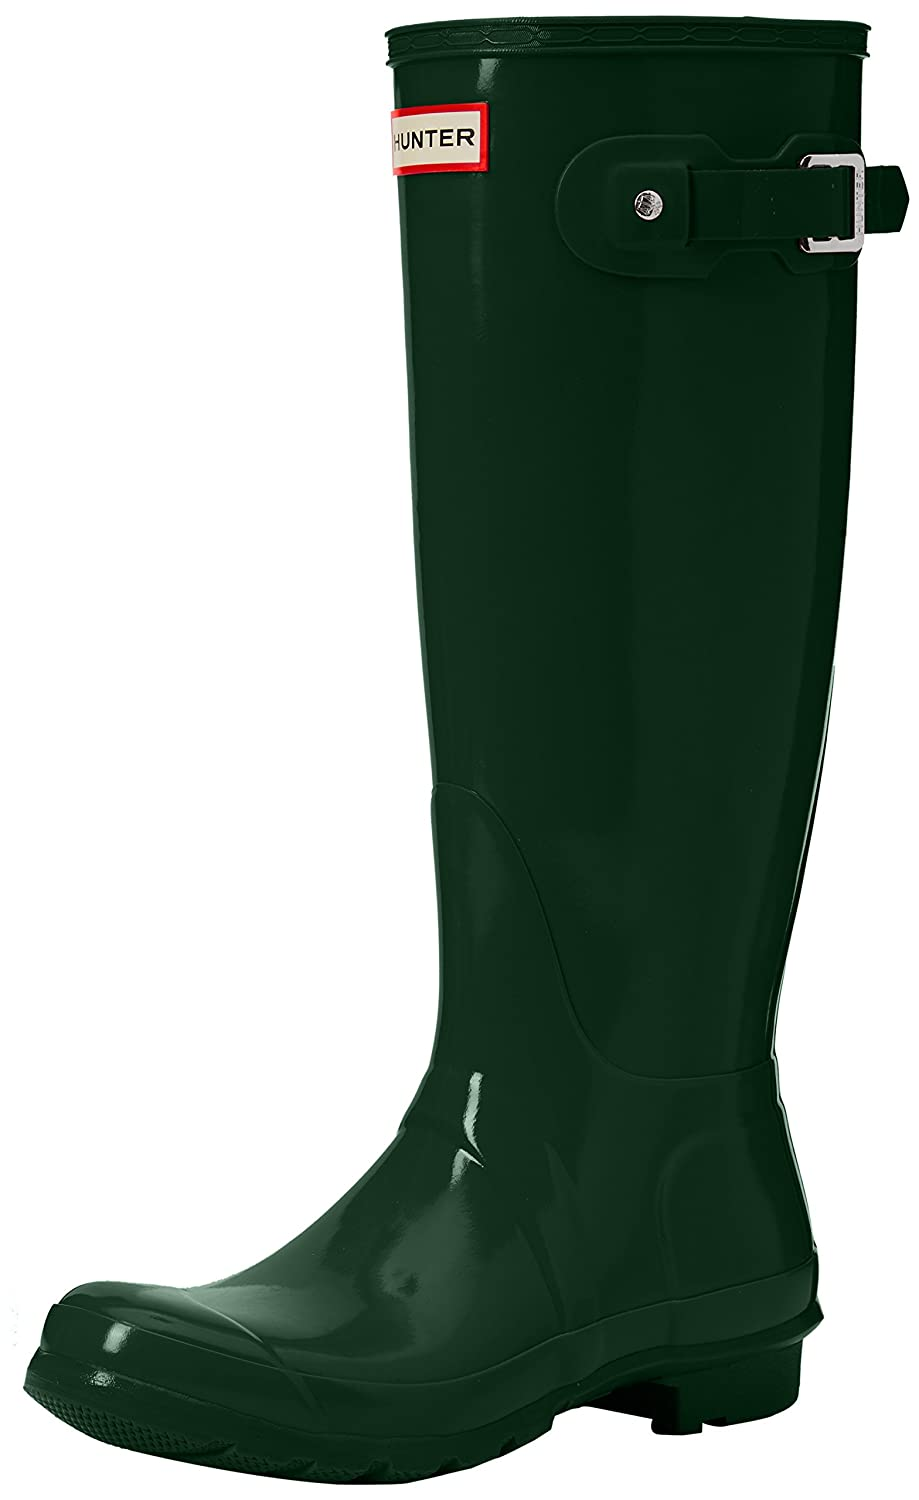 Hunter Damen High Wellington Stiefel Gummistiefel